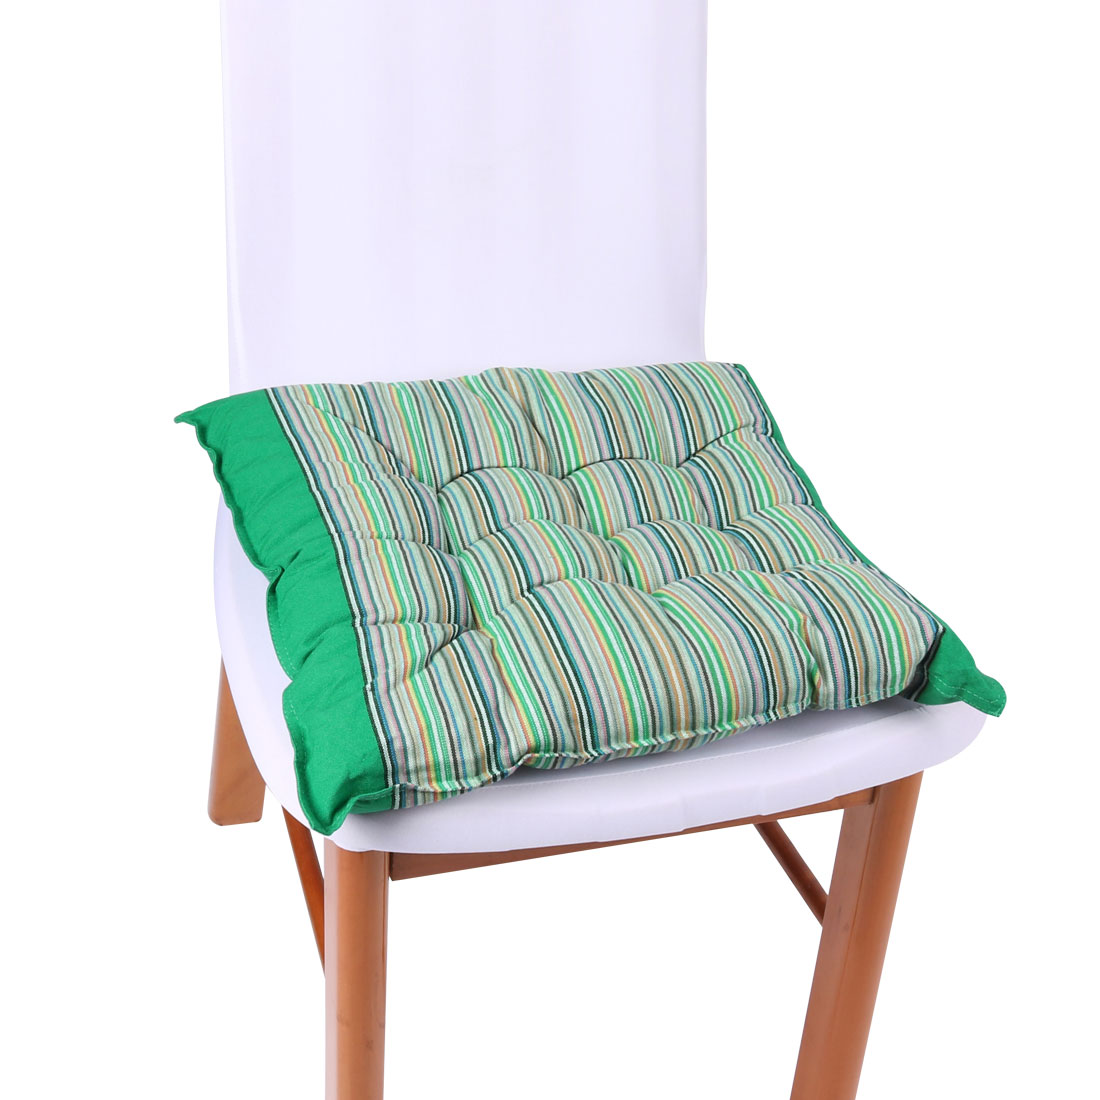 Unique Bargains Home Office Striped Pattern Back Support Chair Seat Cushion Green 40cm x 40cm